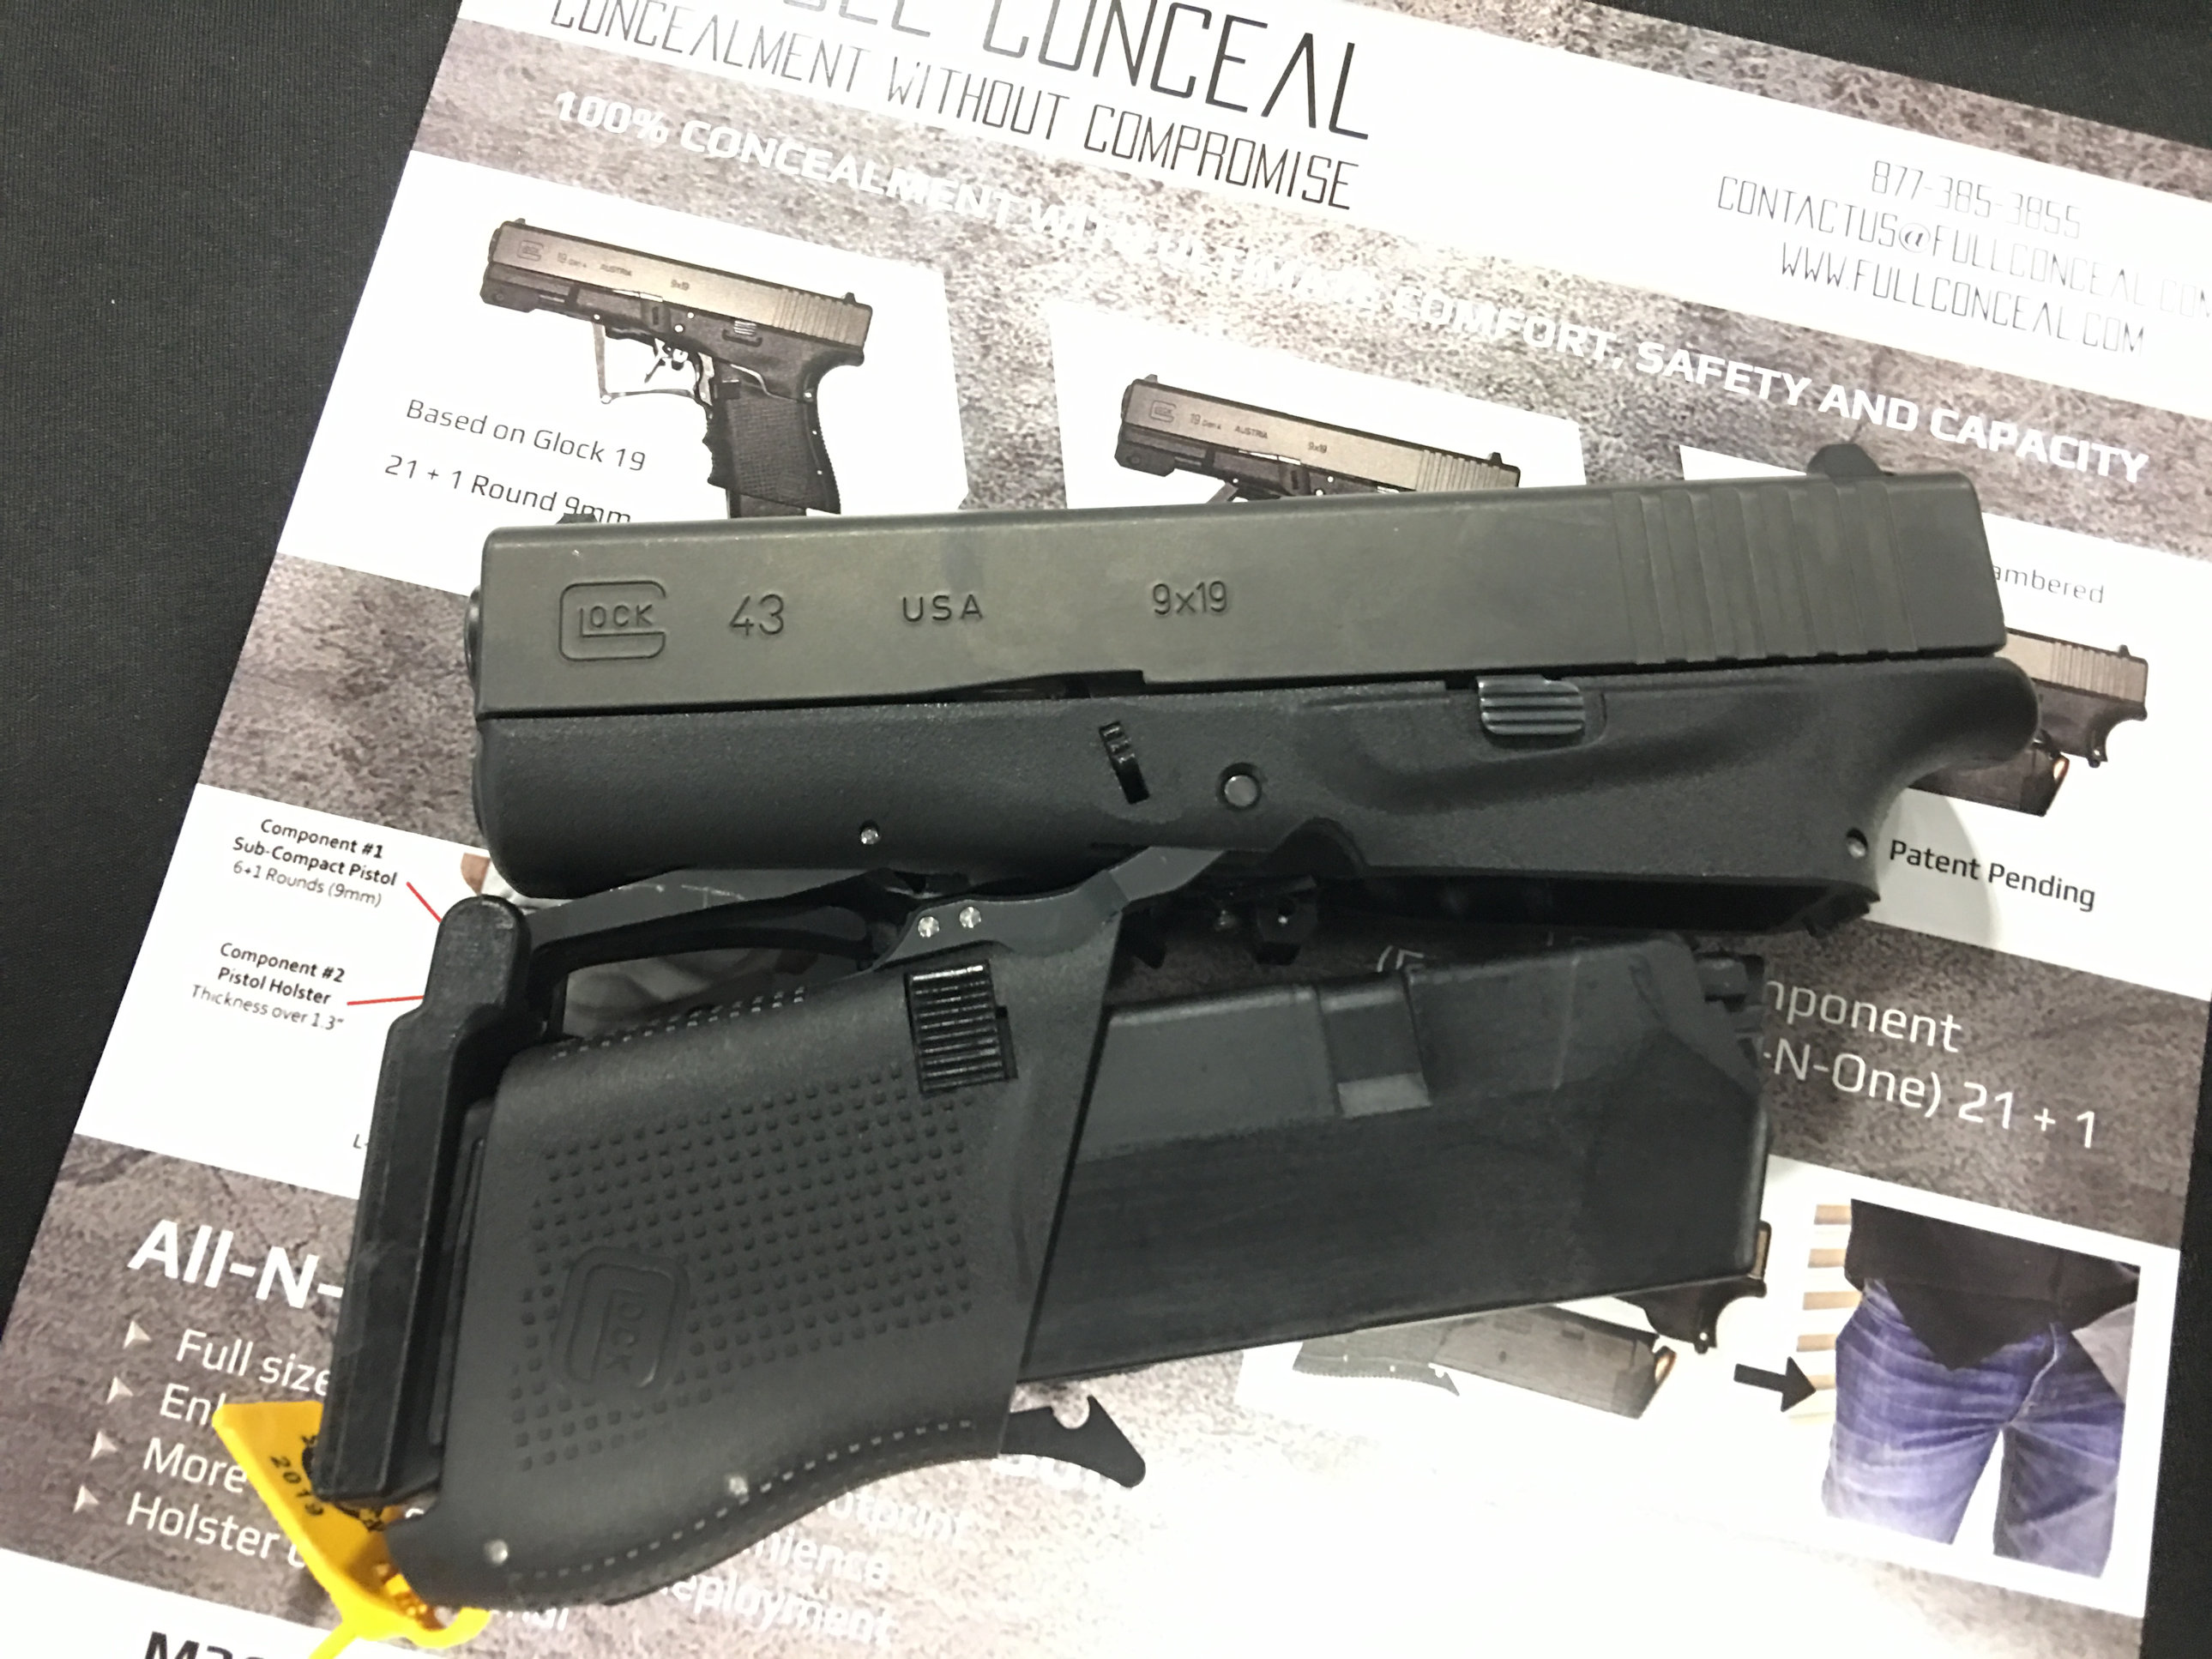 Full Conceal FC M3D (G19) and FC M3S (G43): Fantastic